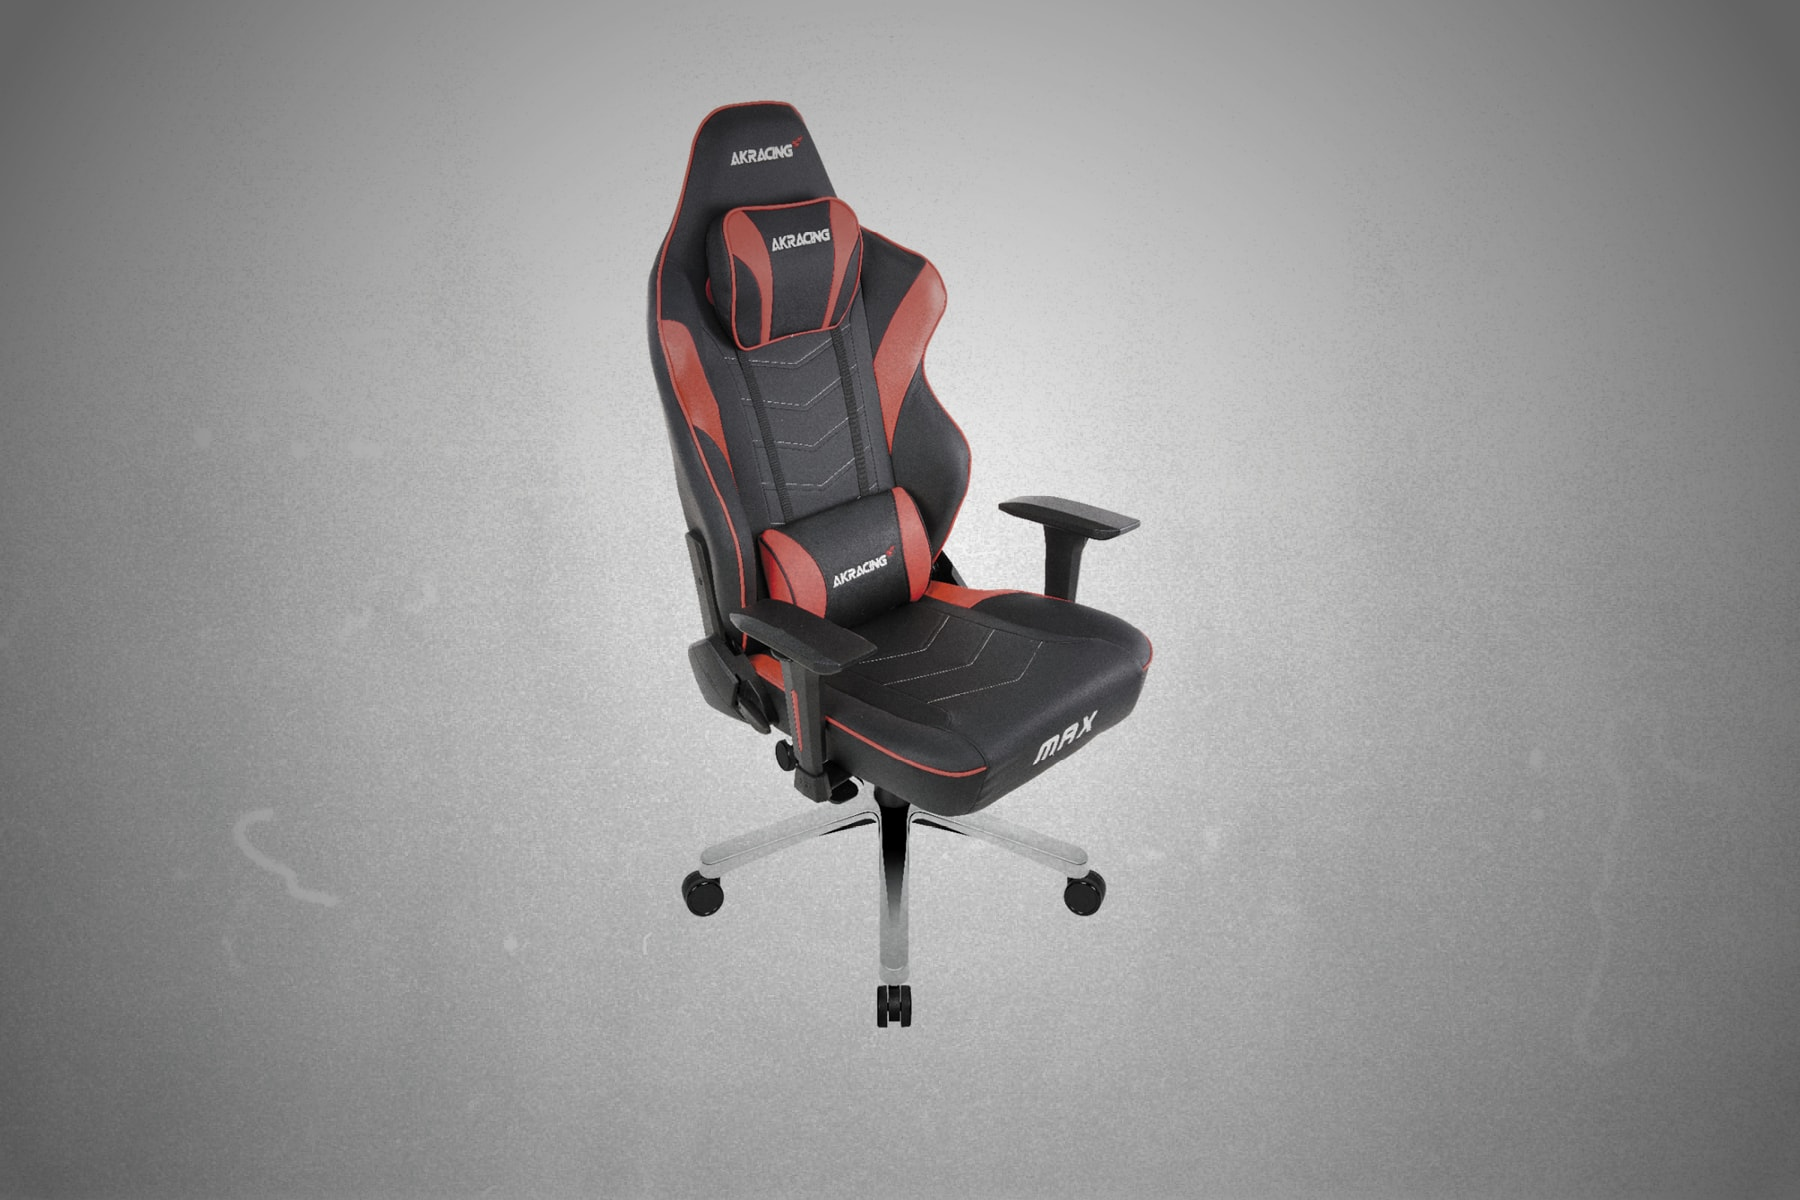 comfortable office chair for gaming